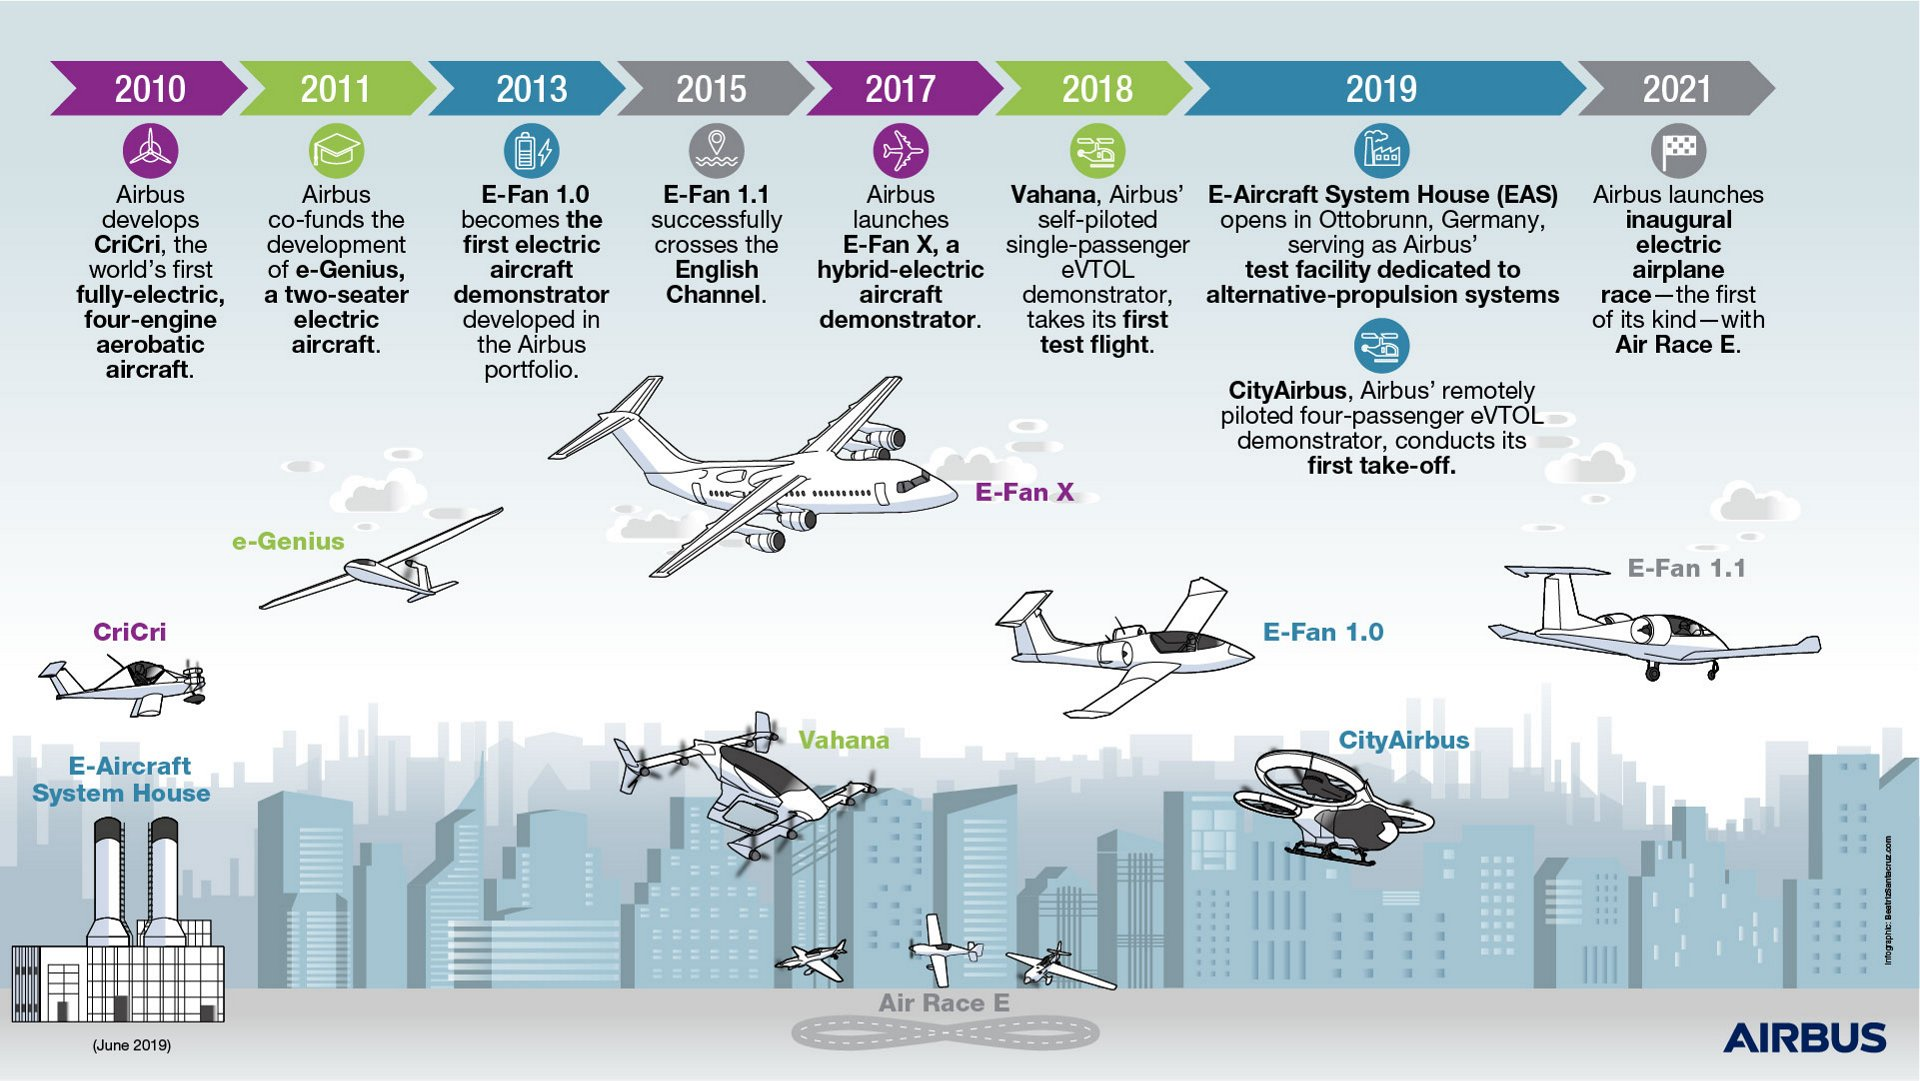 Airbus' electrification journey